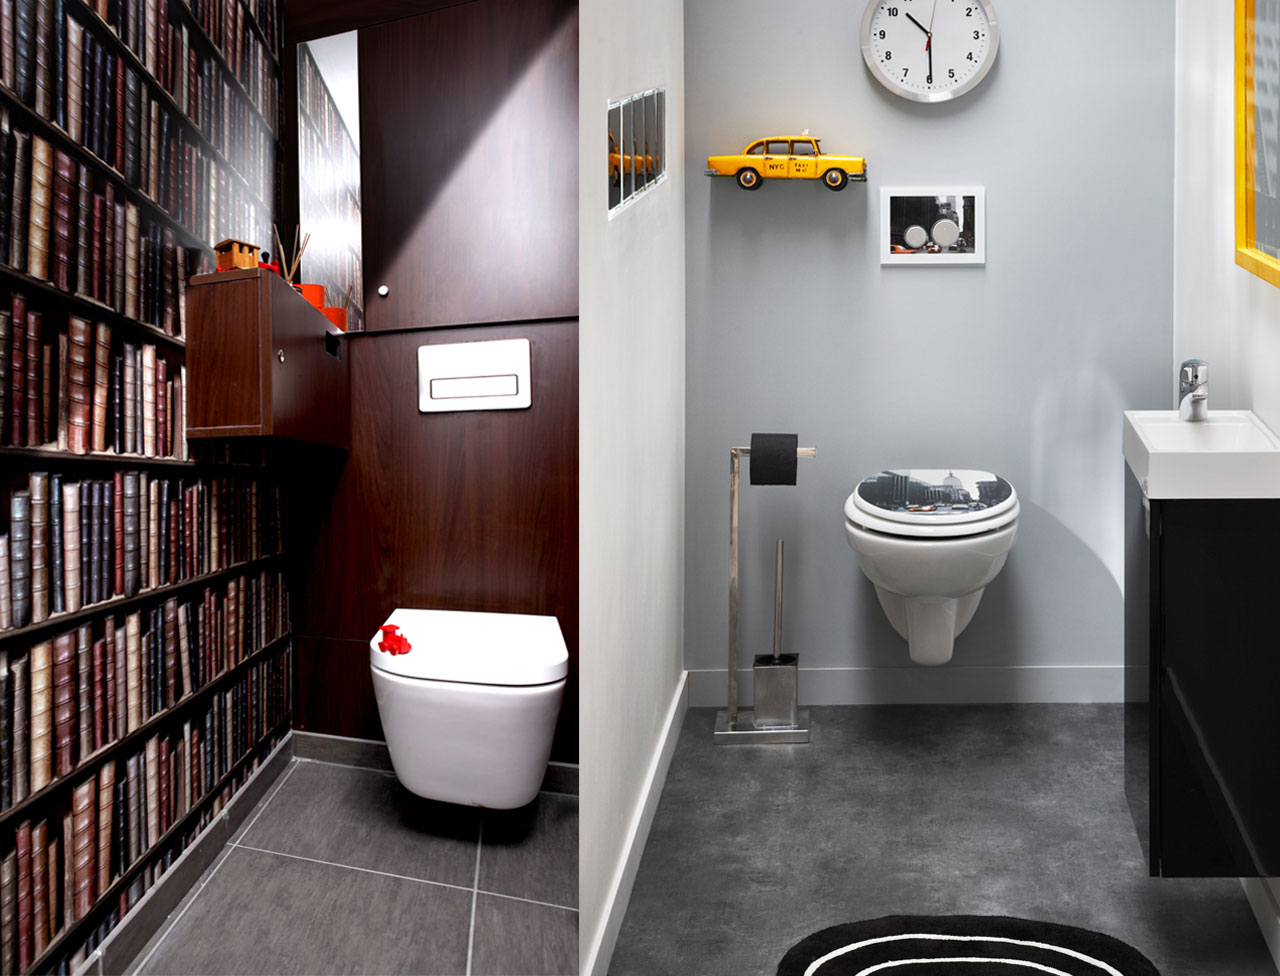 D coration interieur toilettes exemples d 39 am nagements for Inspiration design d interieur